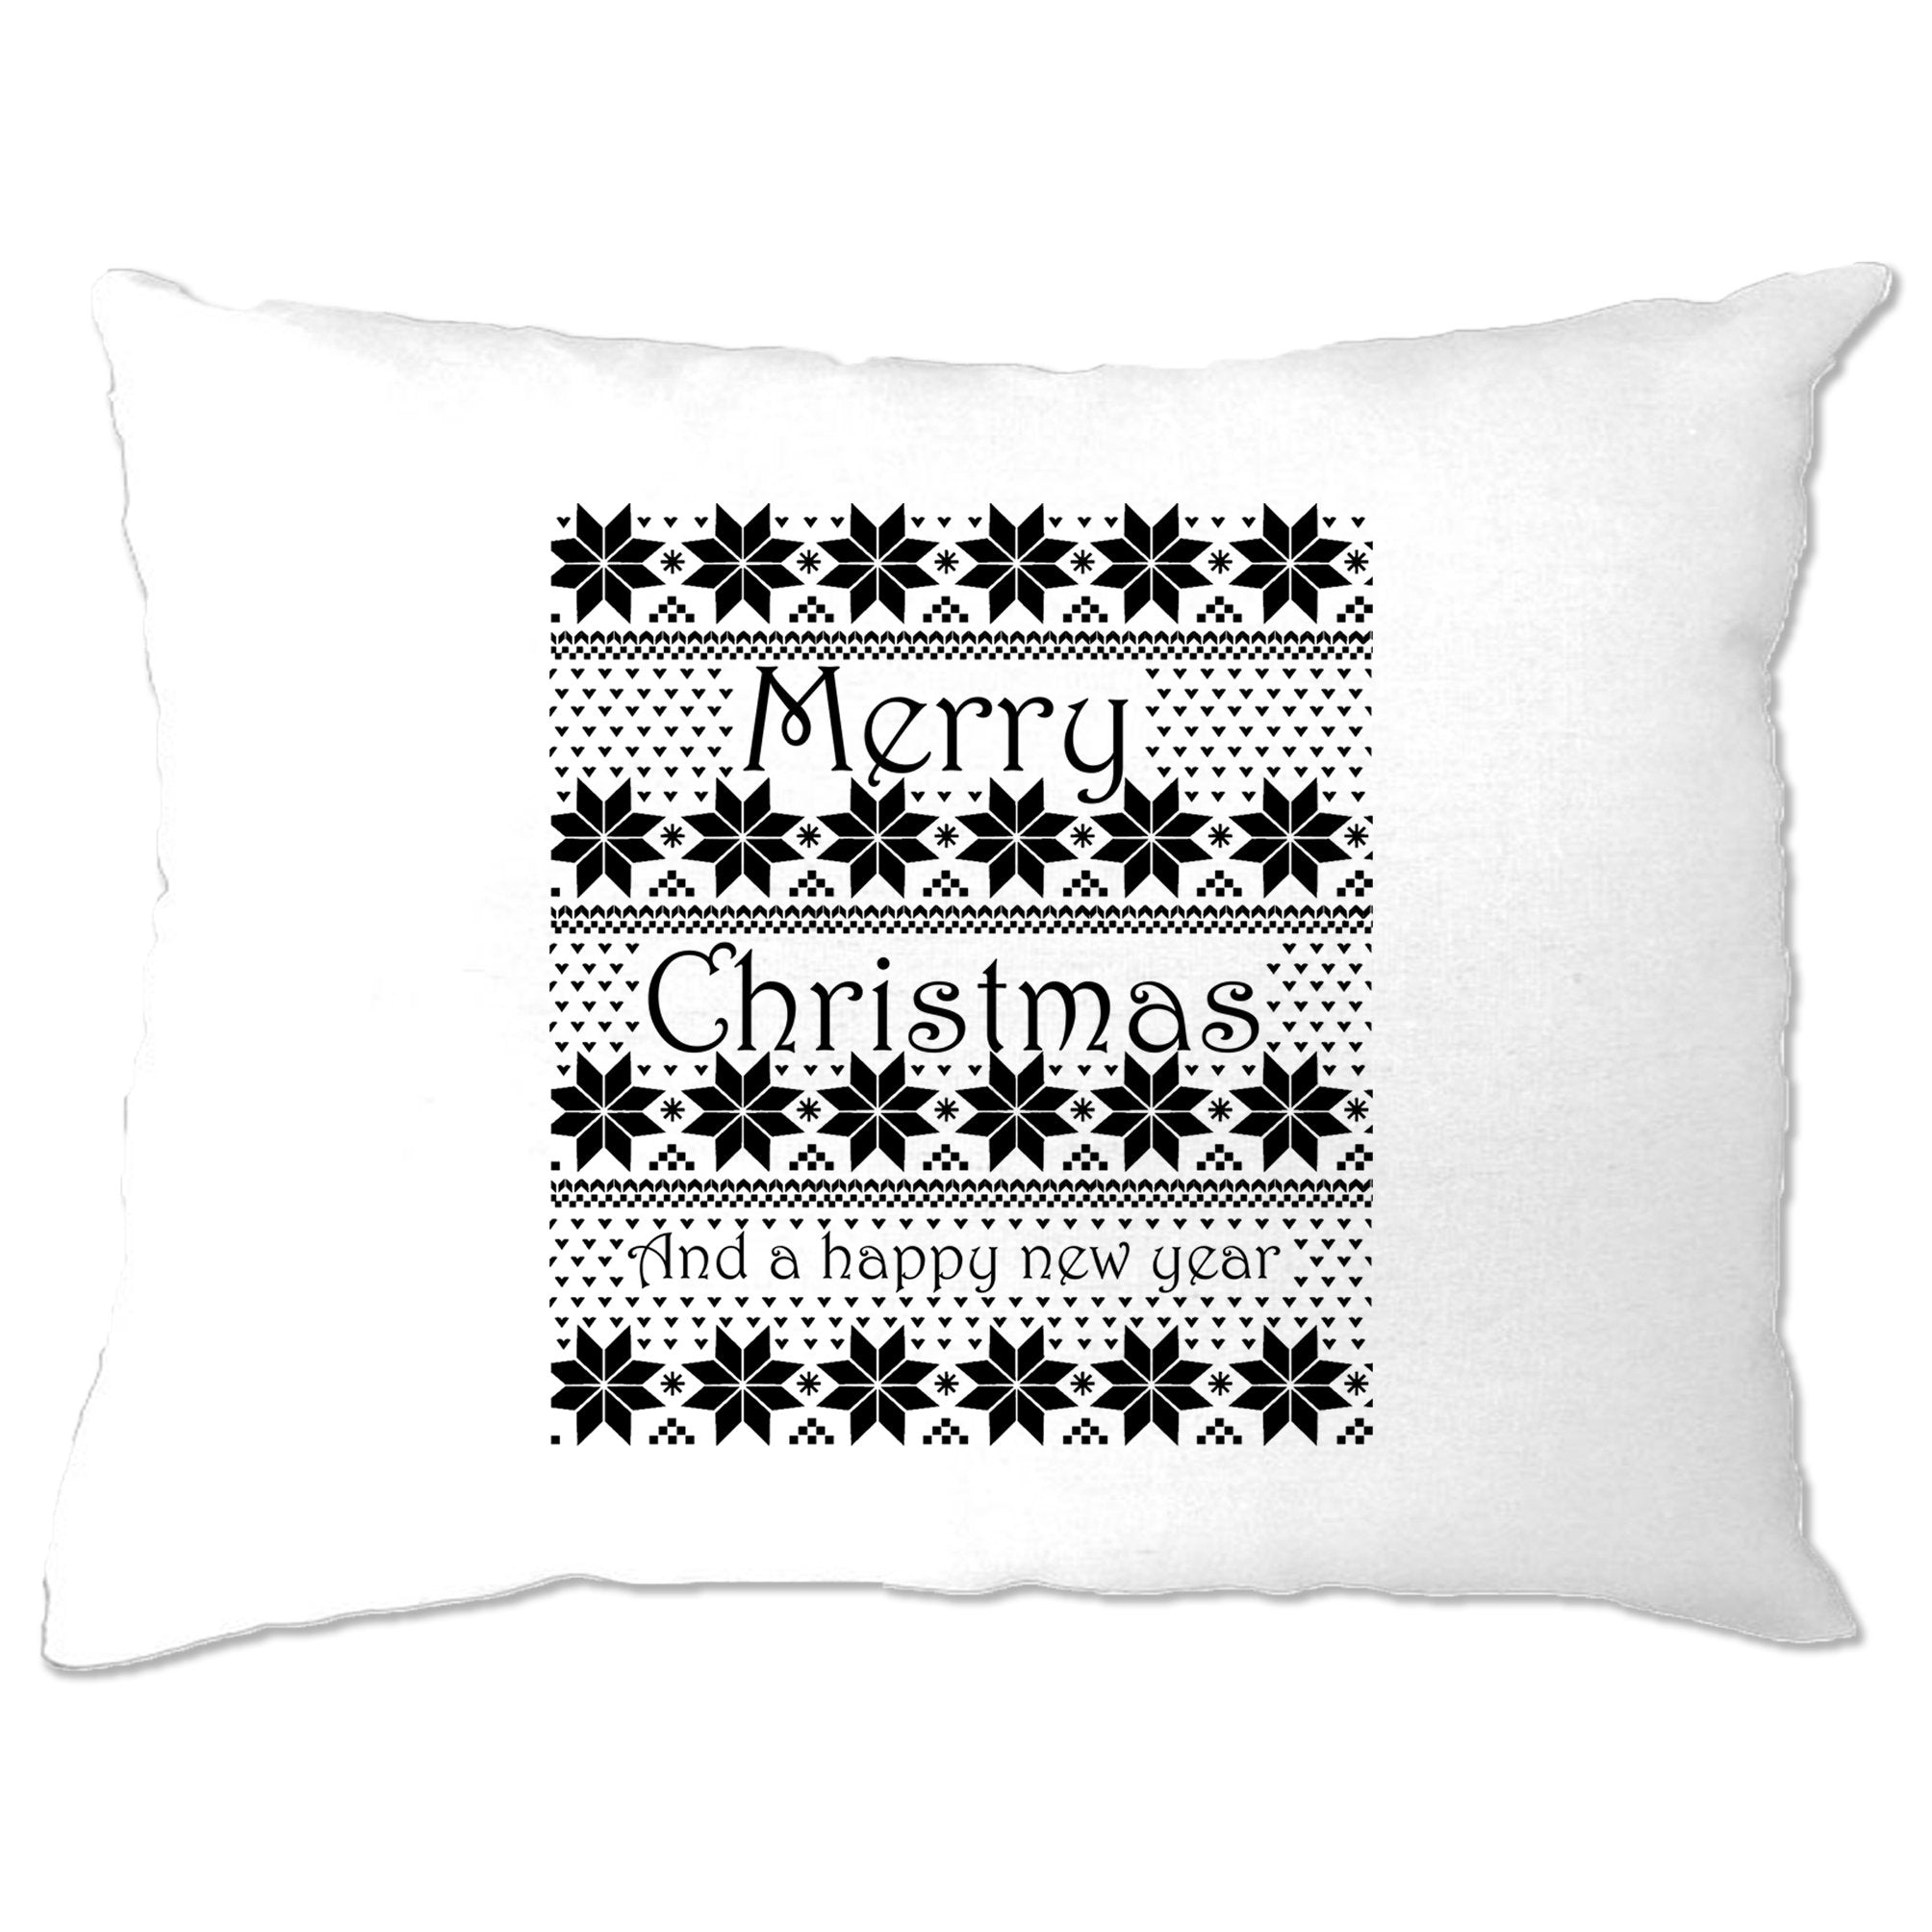 Merry Christmas Pillow Case Xmas Ugly Sweater Pattern